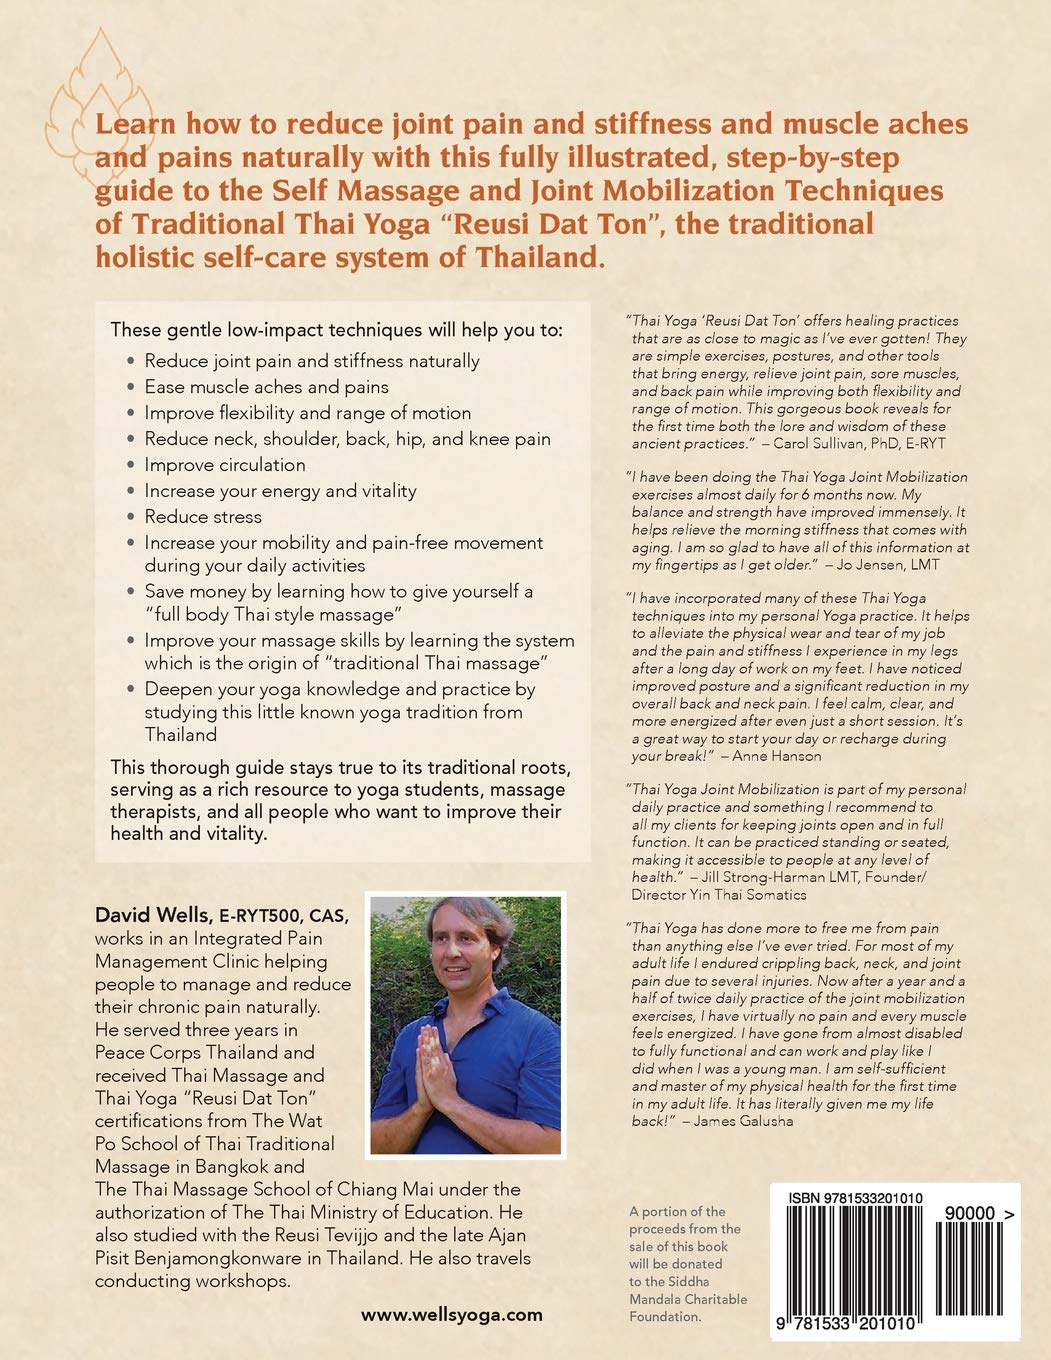 Self Massage and Joint Mobilization of Traditional Thai Yoga ...